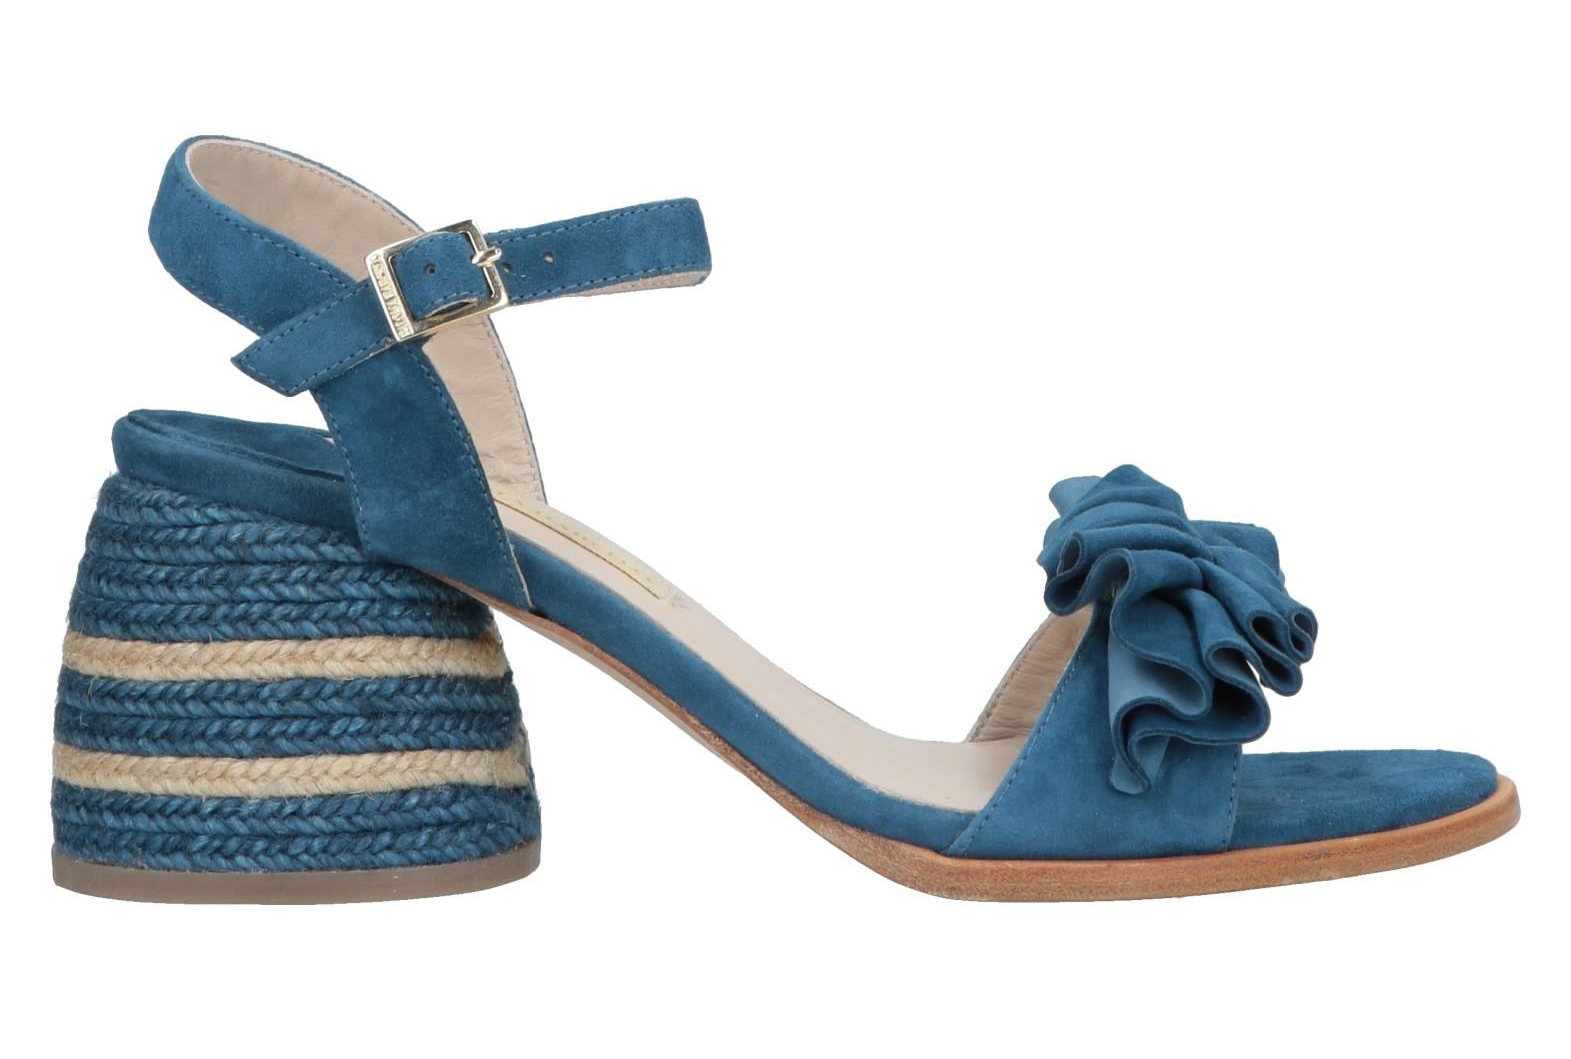 Paloma Barcelo Sandals